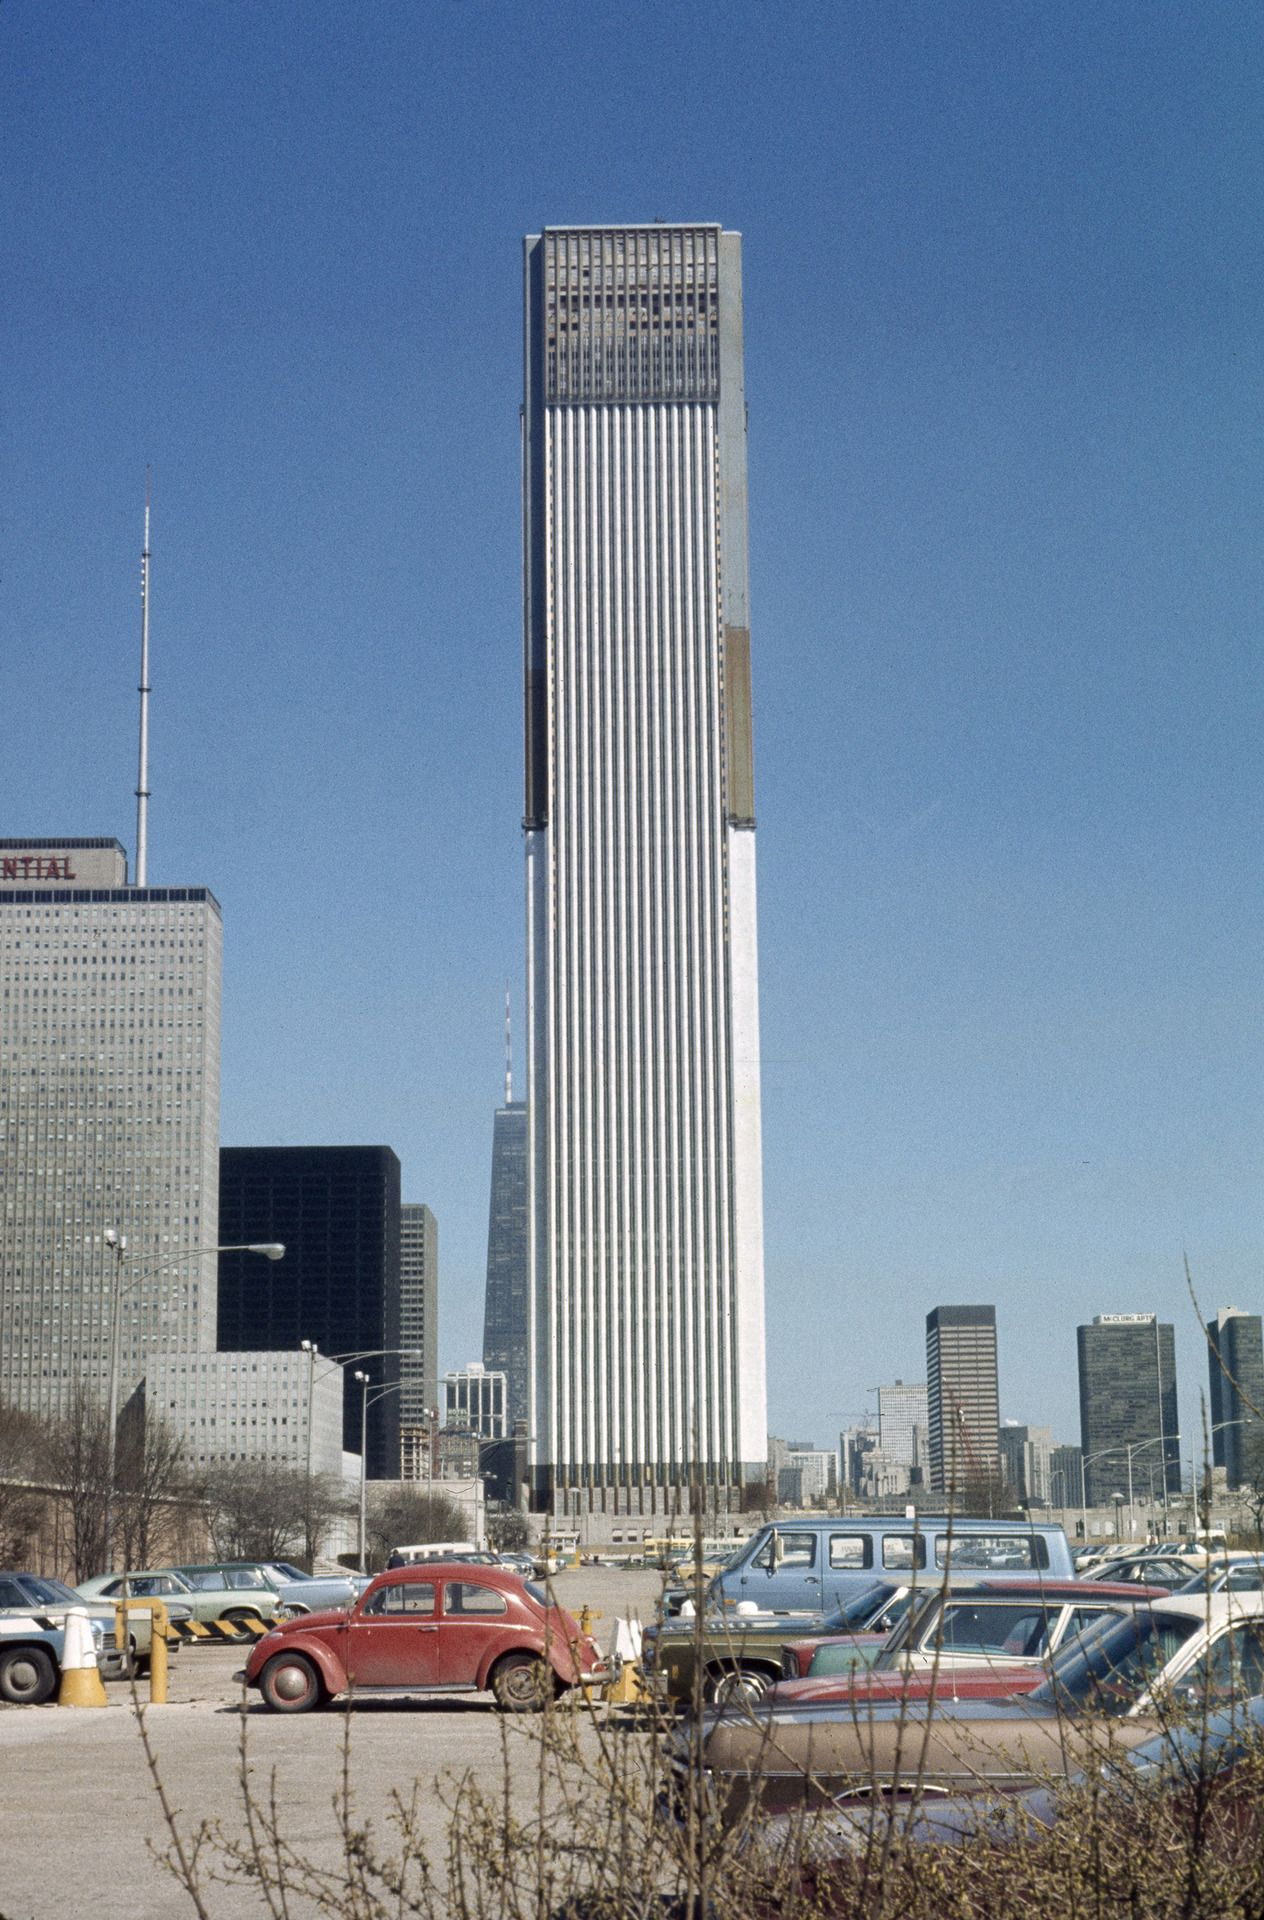 Photograph Of The Standard Oil Building Now Aon Center Under